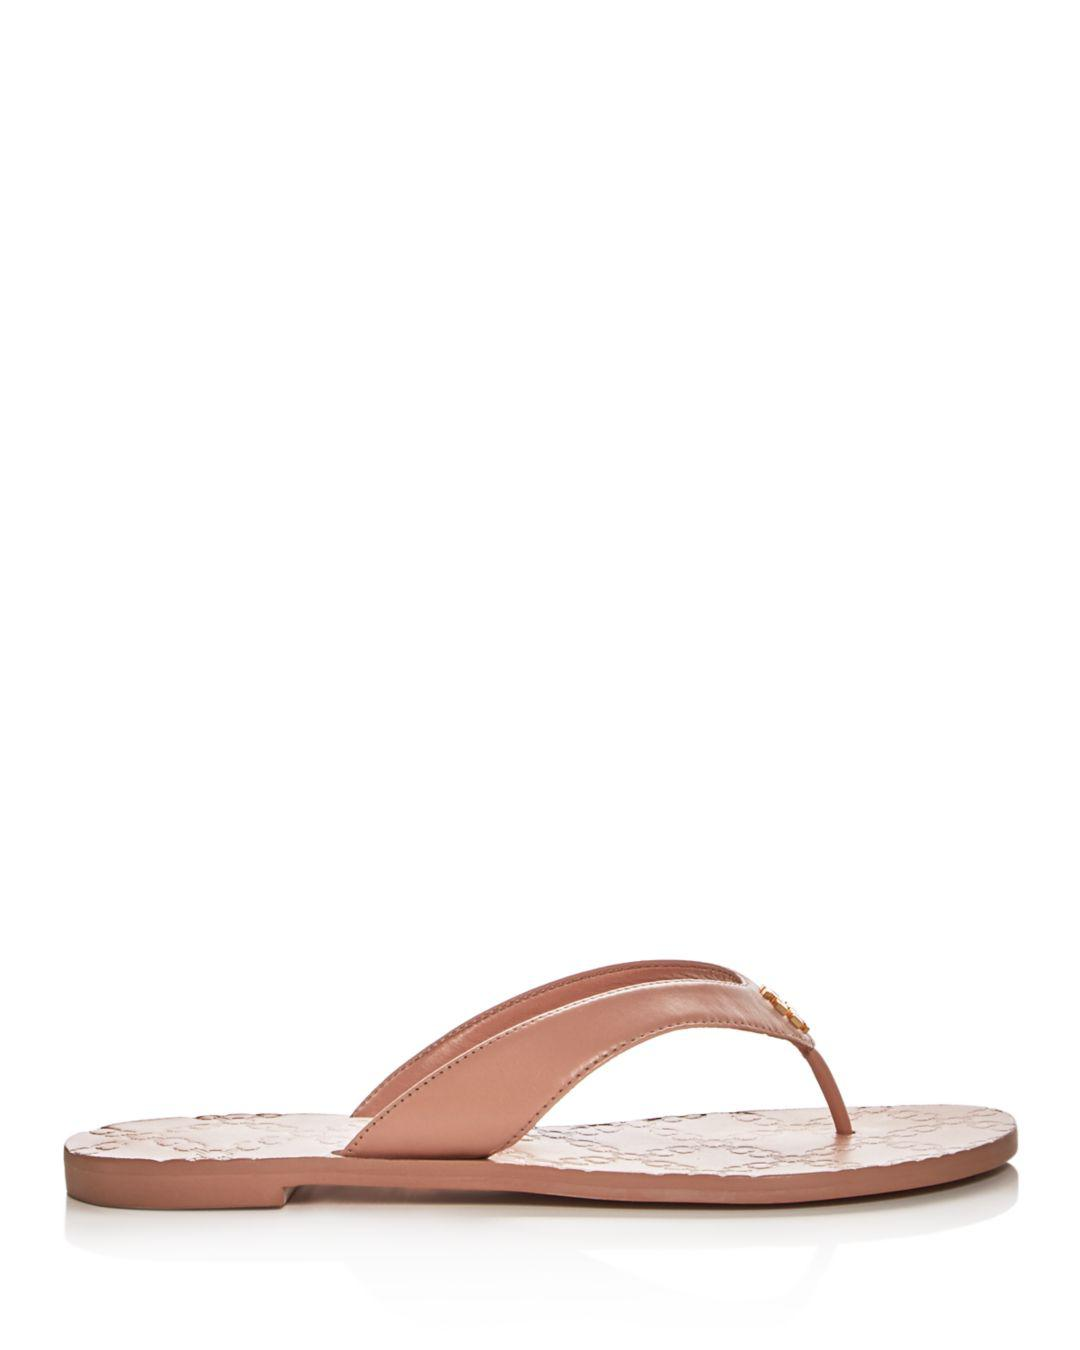 871860bad45a Lyst - Tory Burch Women s Monroe Leather Thong Sandals